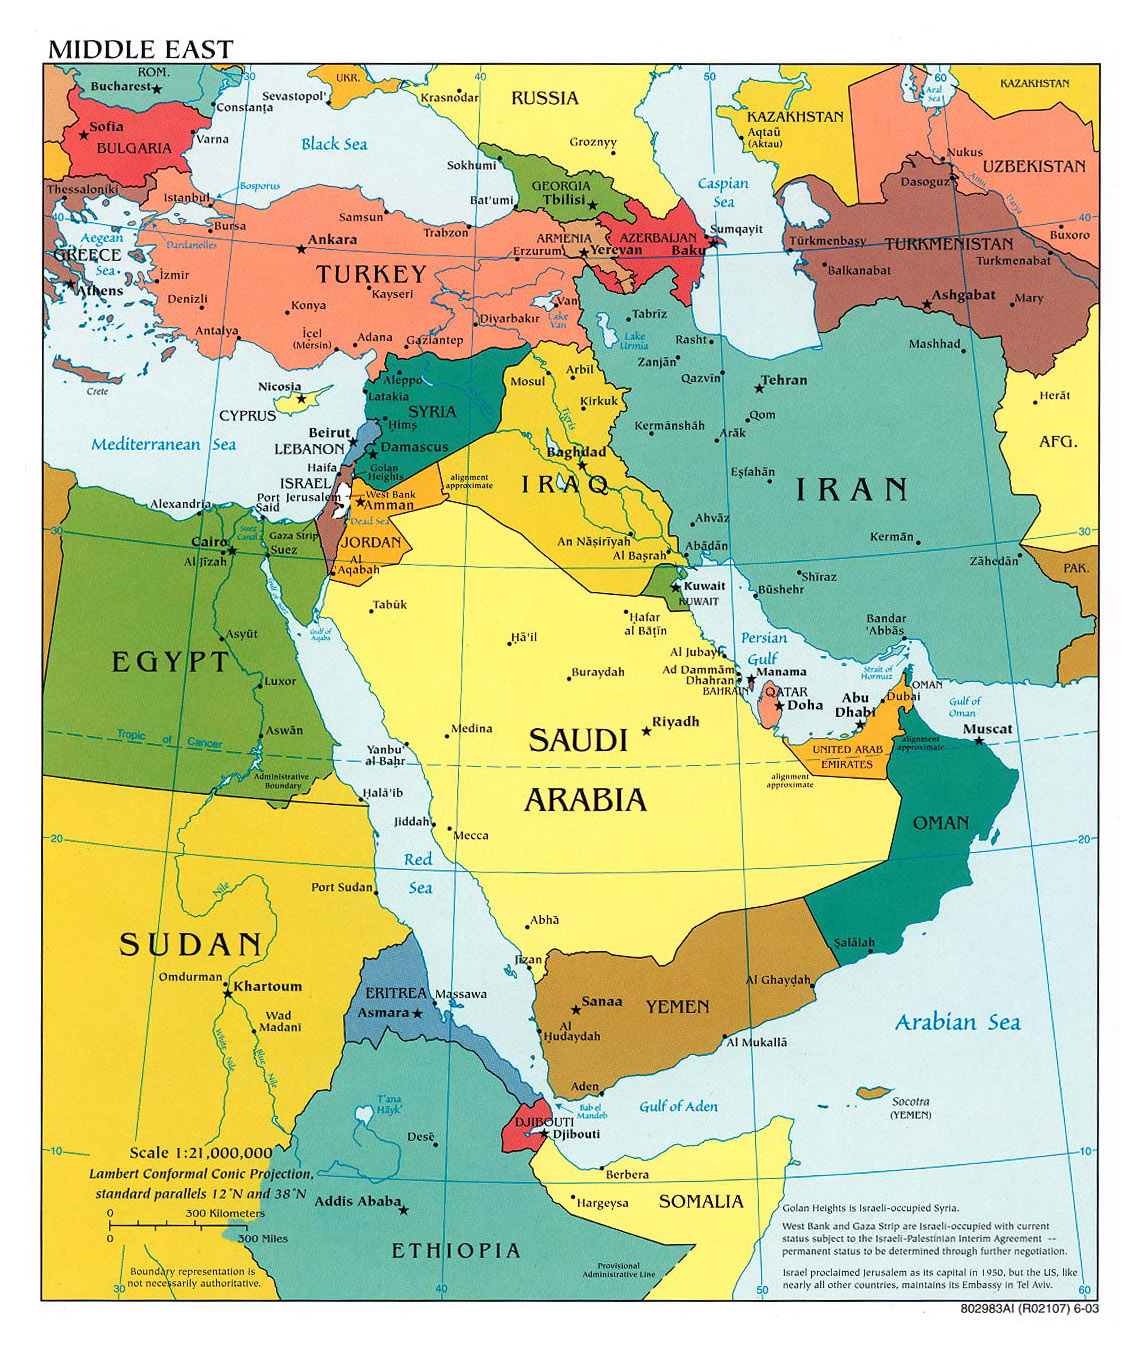 Large political map of the Middle East with major cities and